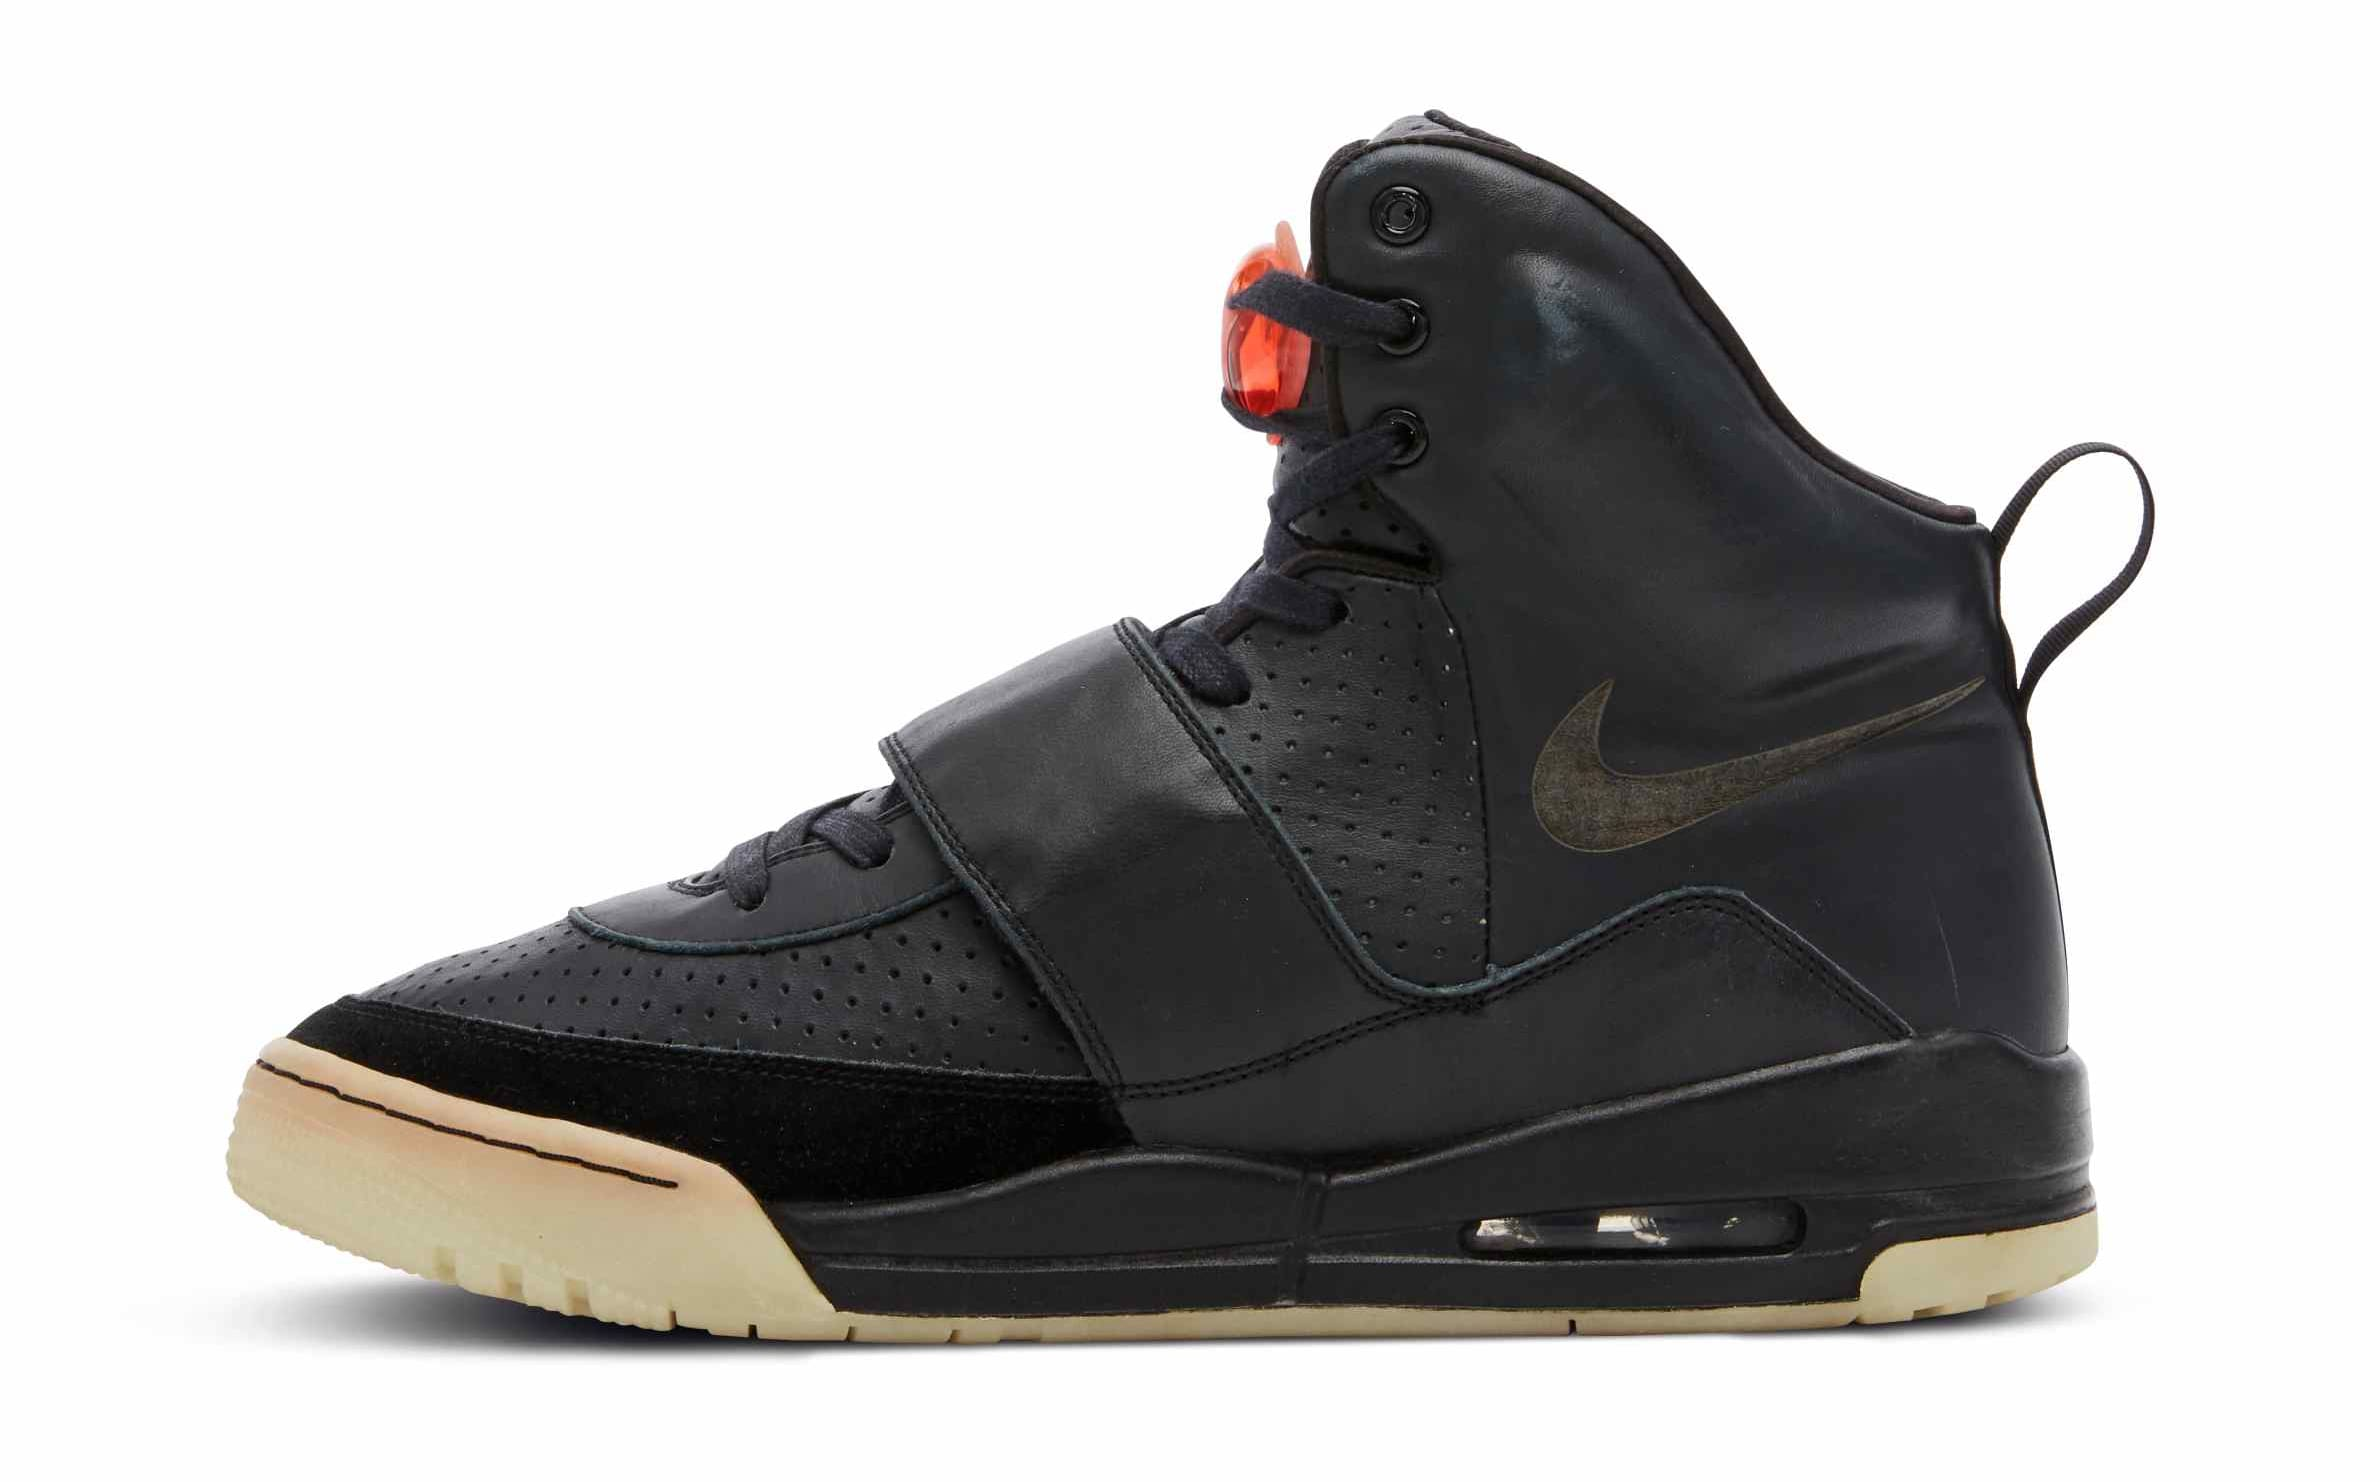 Nike Air Yeezy 1 Grammy's Sample Lateral